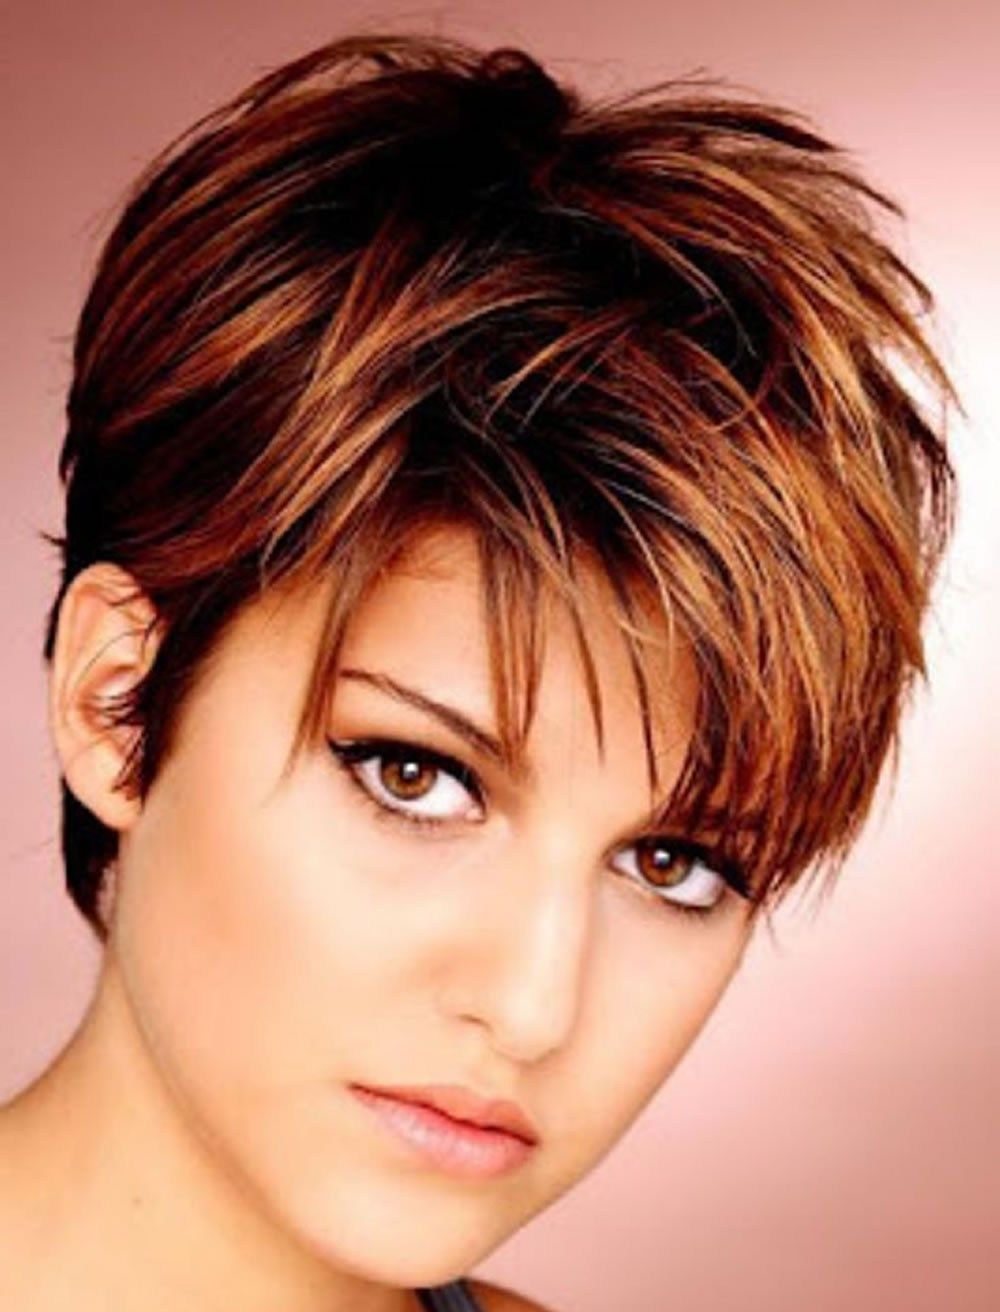 Image Result For Short Hairstyles For Fine Thin Hair And Long Face Capelli Corti Viso Tondo Capelli Corti Viso Rotondo Capelli Corti Viso Lungo